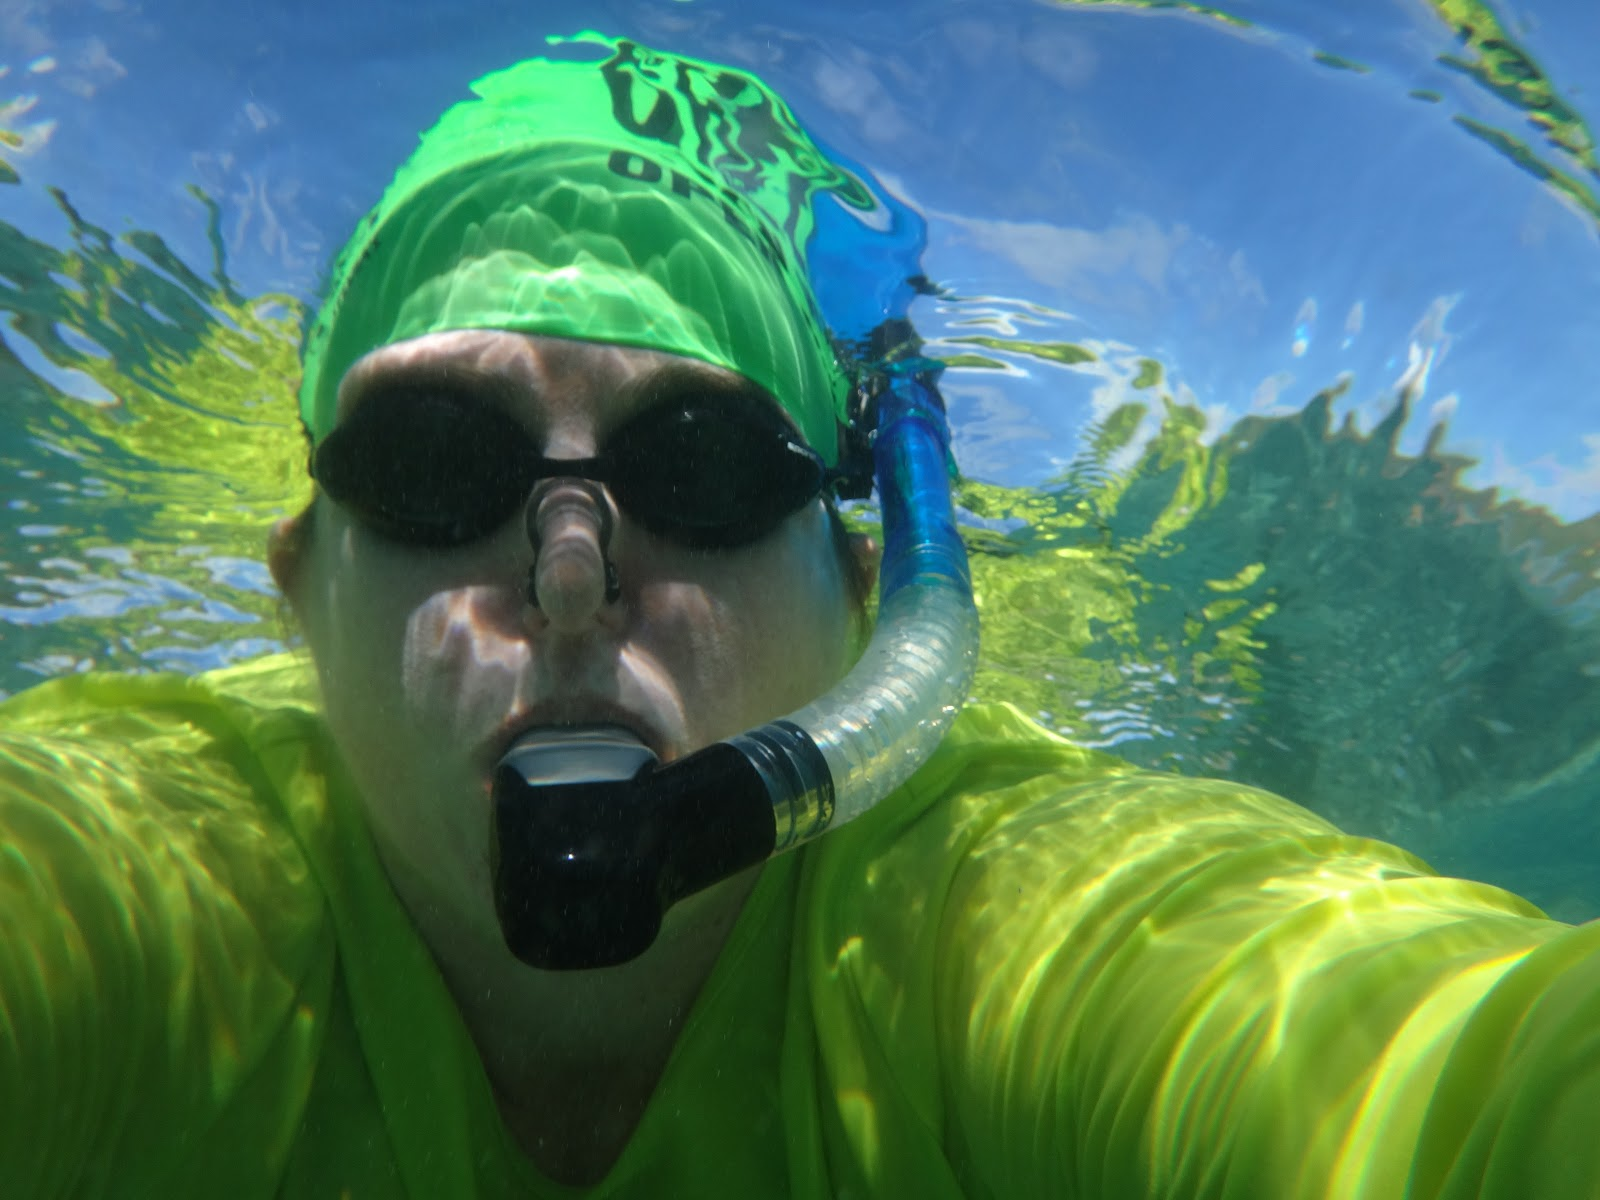 e4421b78ed In part this is because I want my prescription goggles. And in part because  using a snorkel that has been in someone else's mouth is ick.